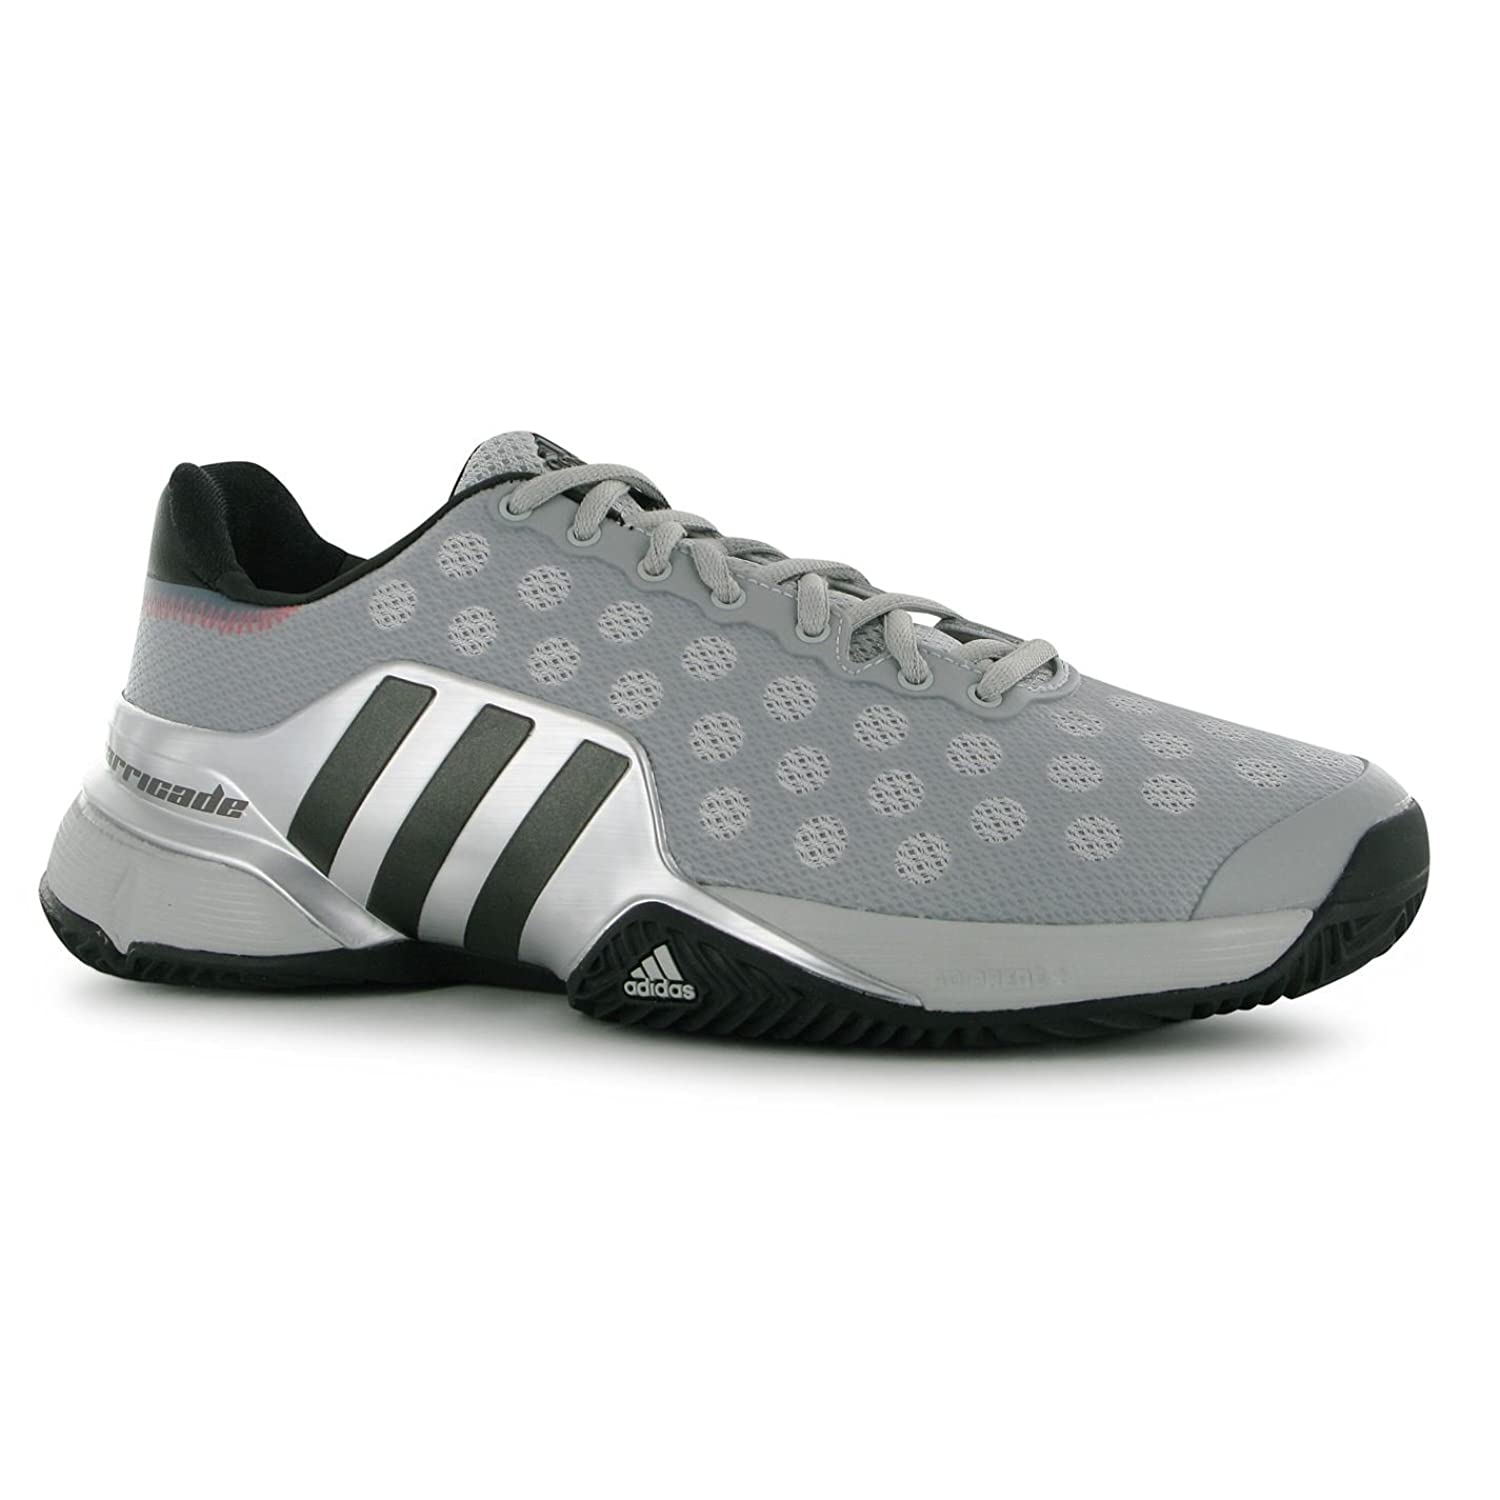 Adidas 2015 Barricade Men's Tennis Shoes Grey/iron/silver